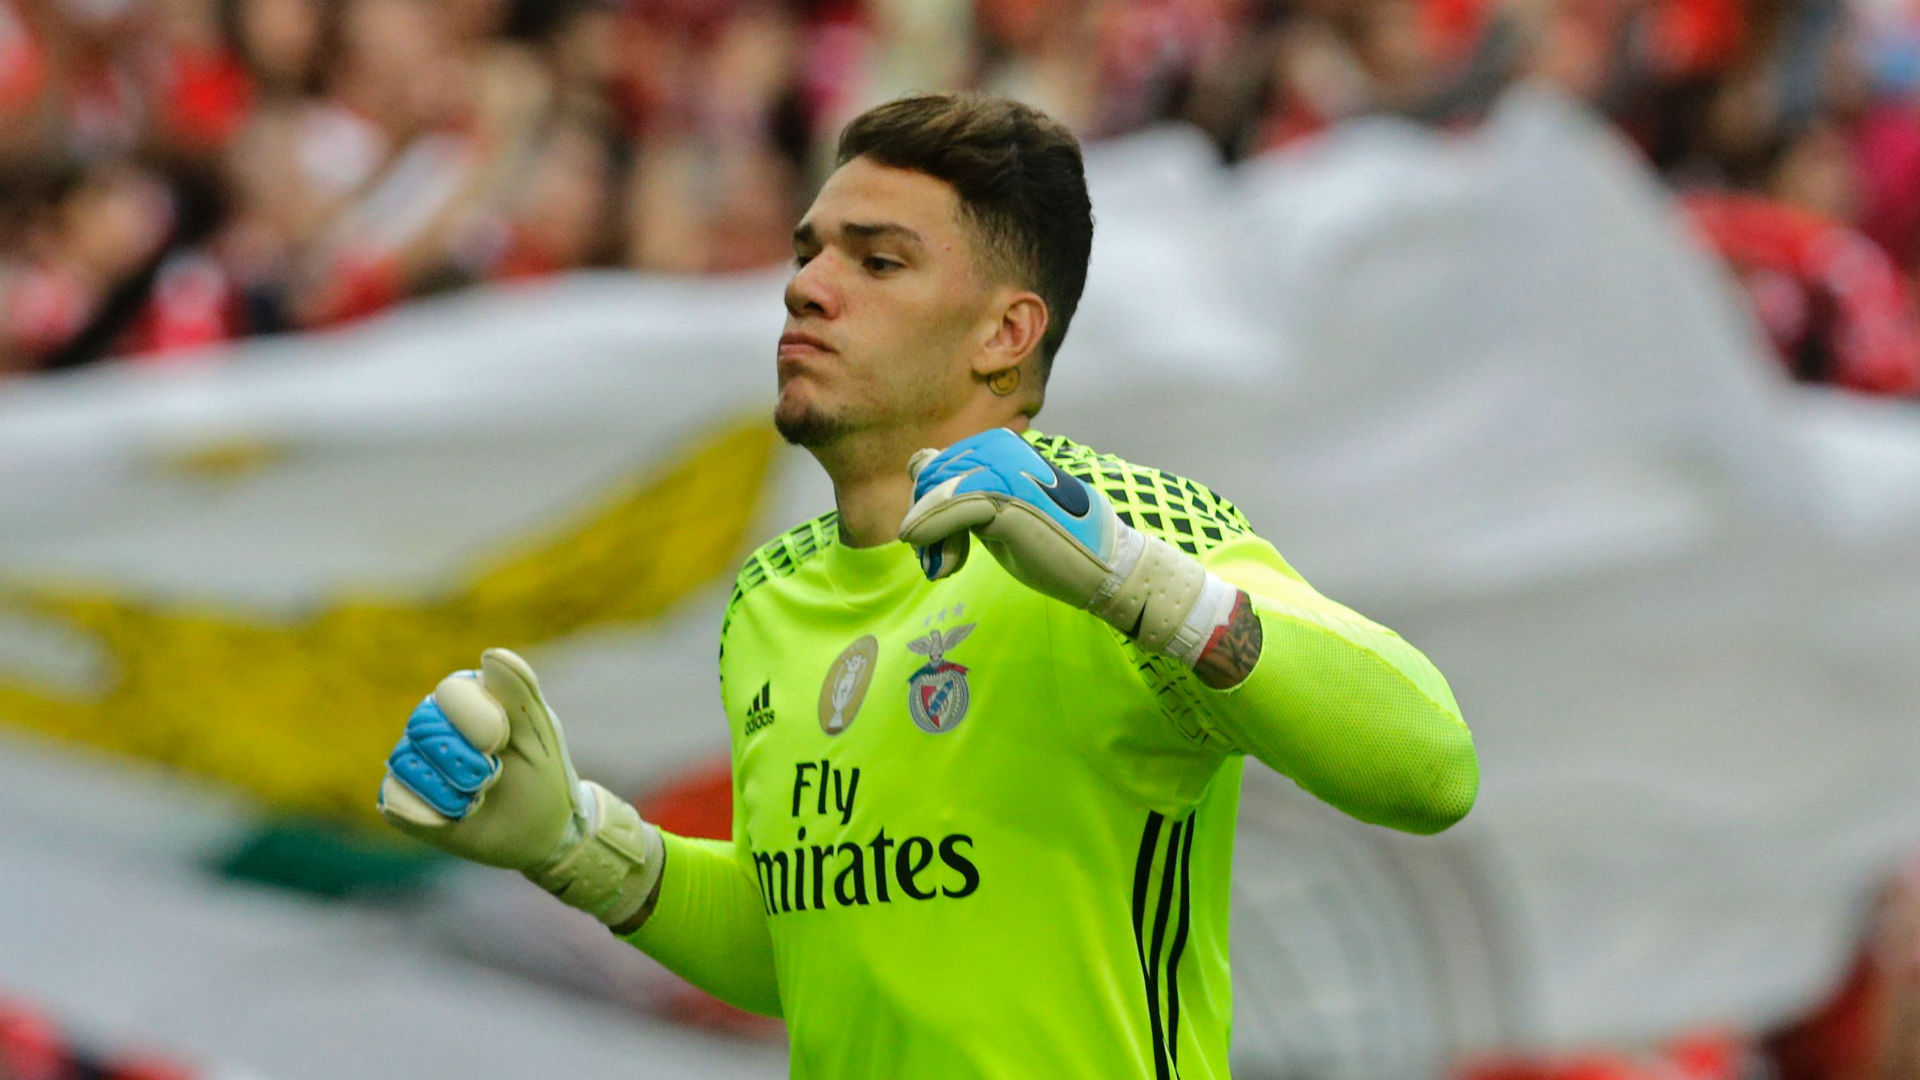 Man City eye £35m goalkeeper deal for Benfica's Ederson